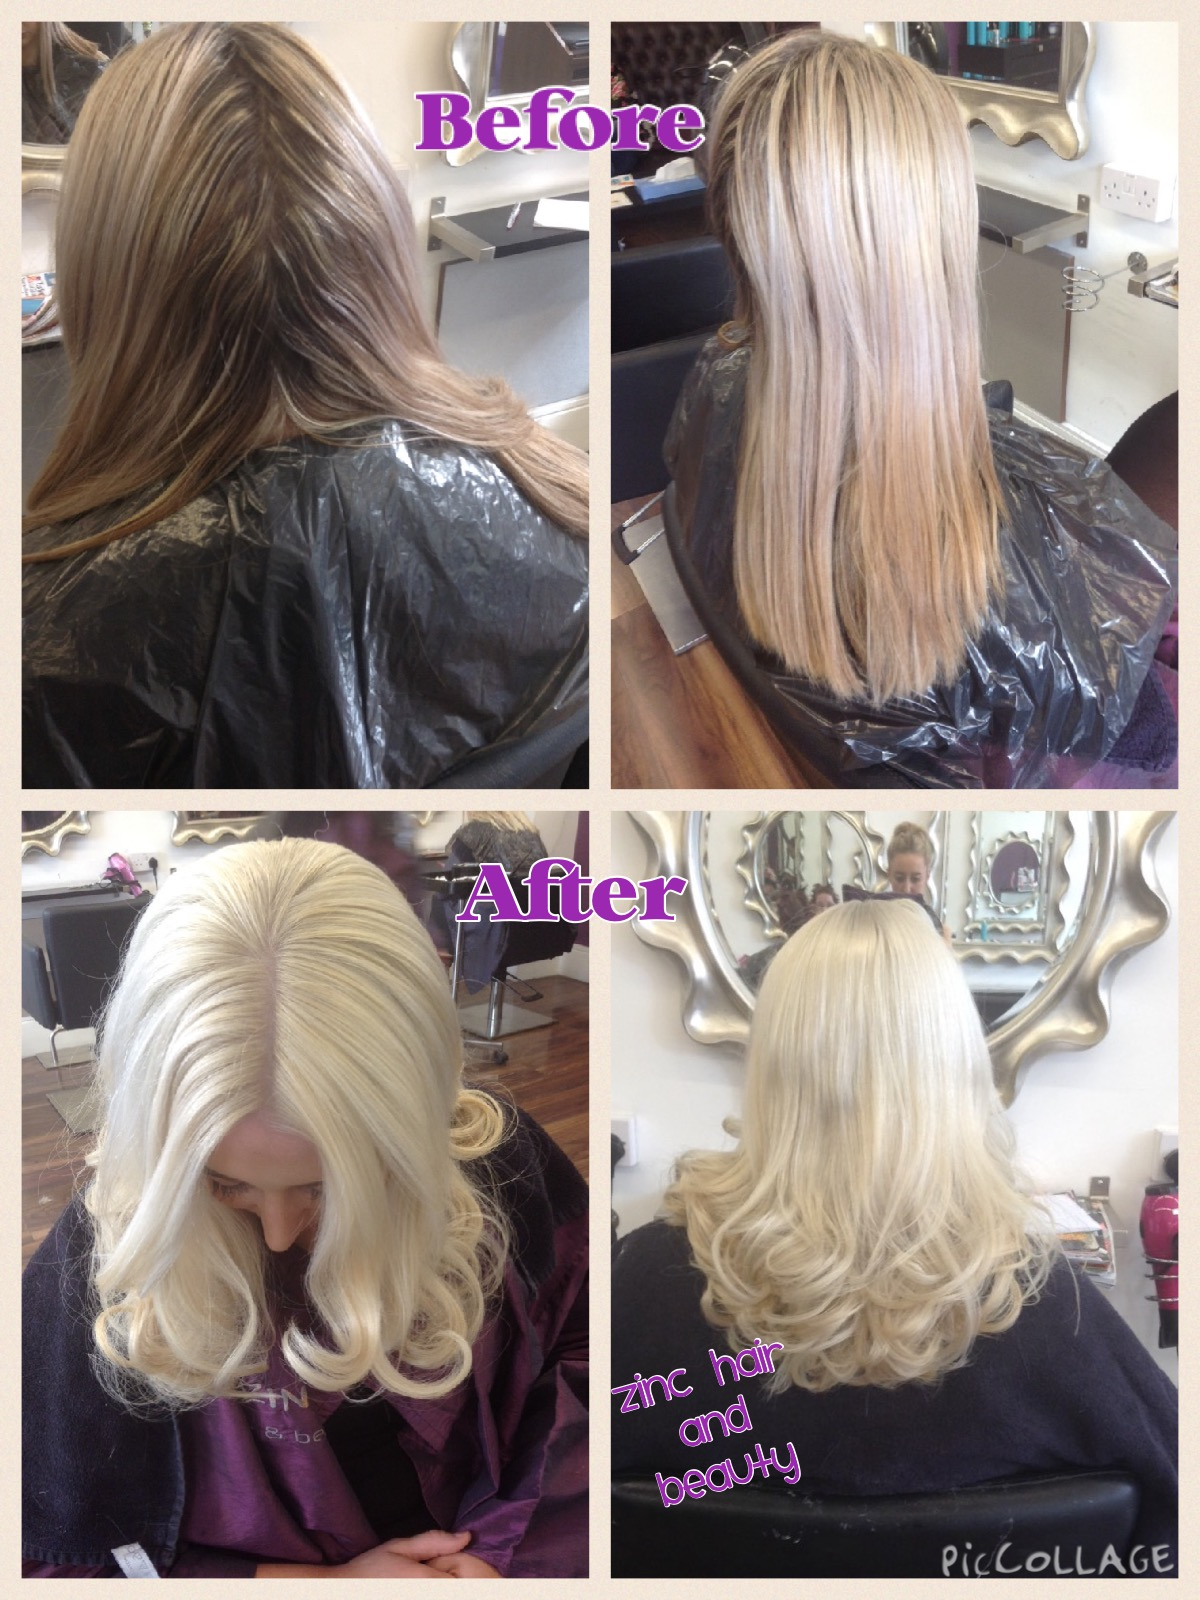 OLAPLEX the next big thing - Zinc Hair & Beauty, Dublin